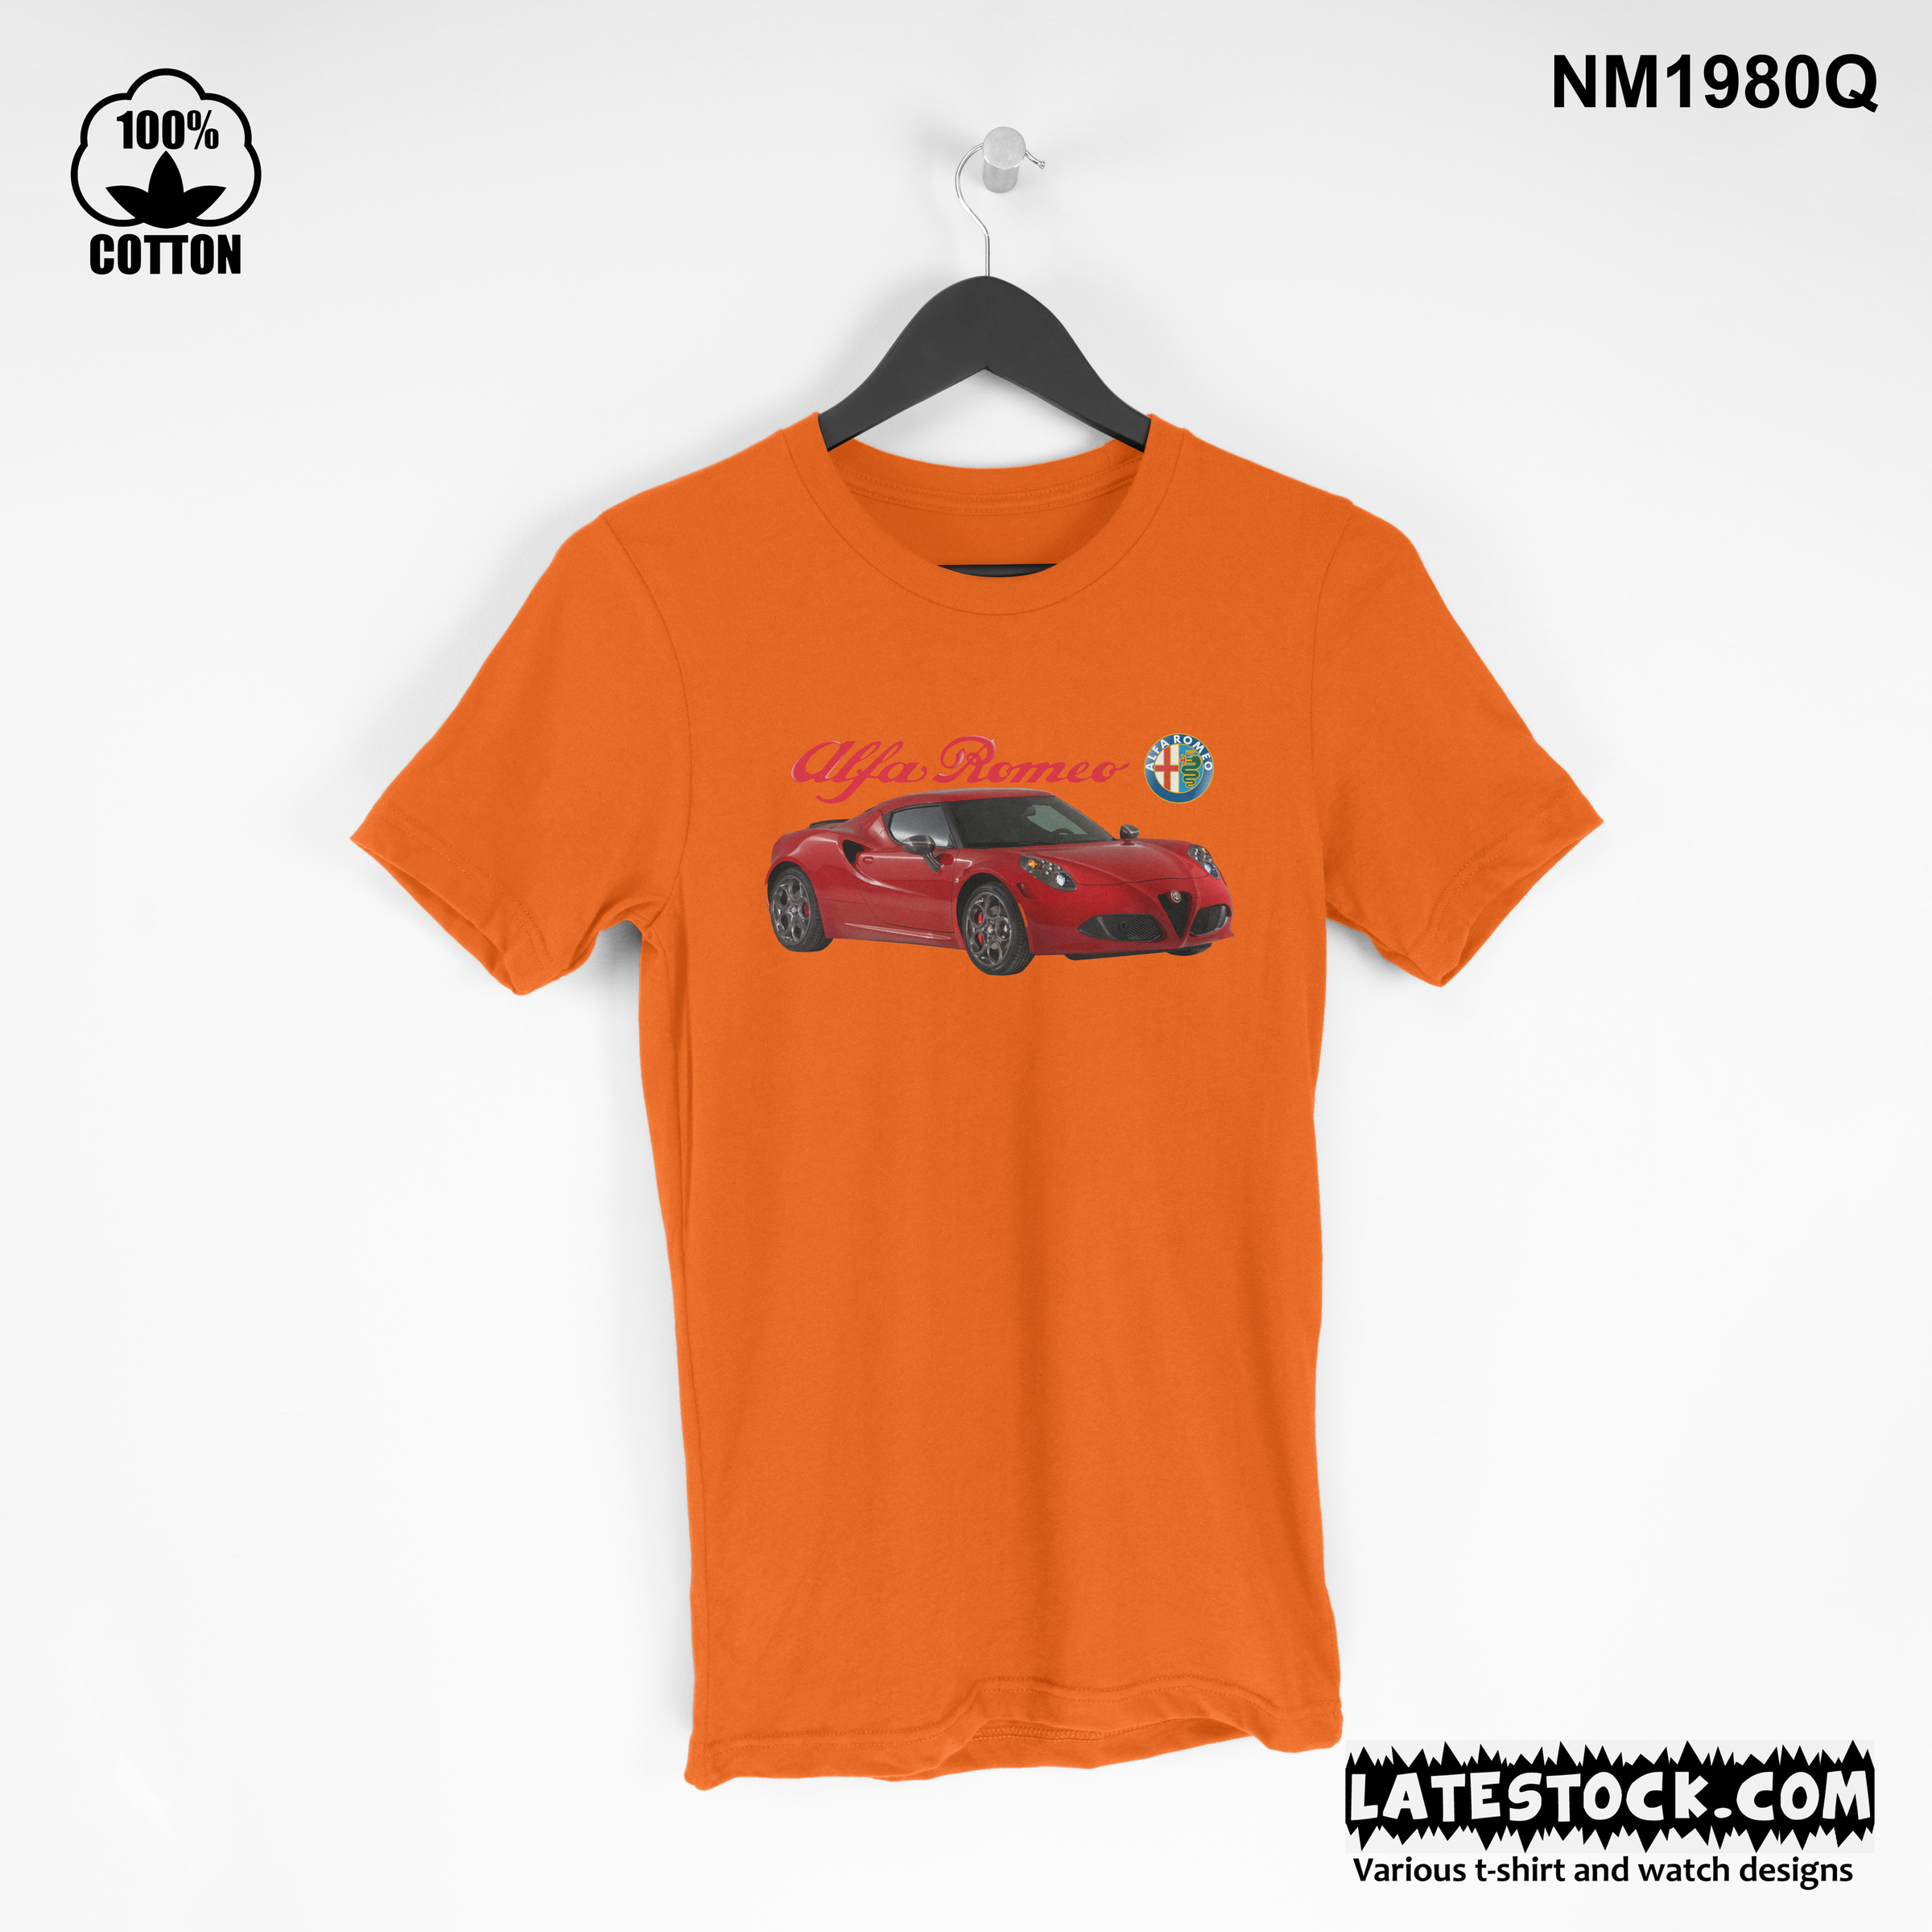 1.6 rare item, new design Alfa Romeo 4C T Shirt Tee Unisex orange.jpg